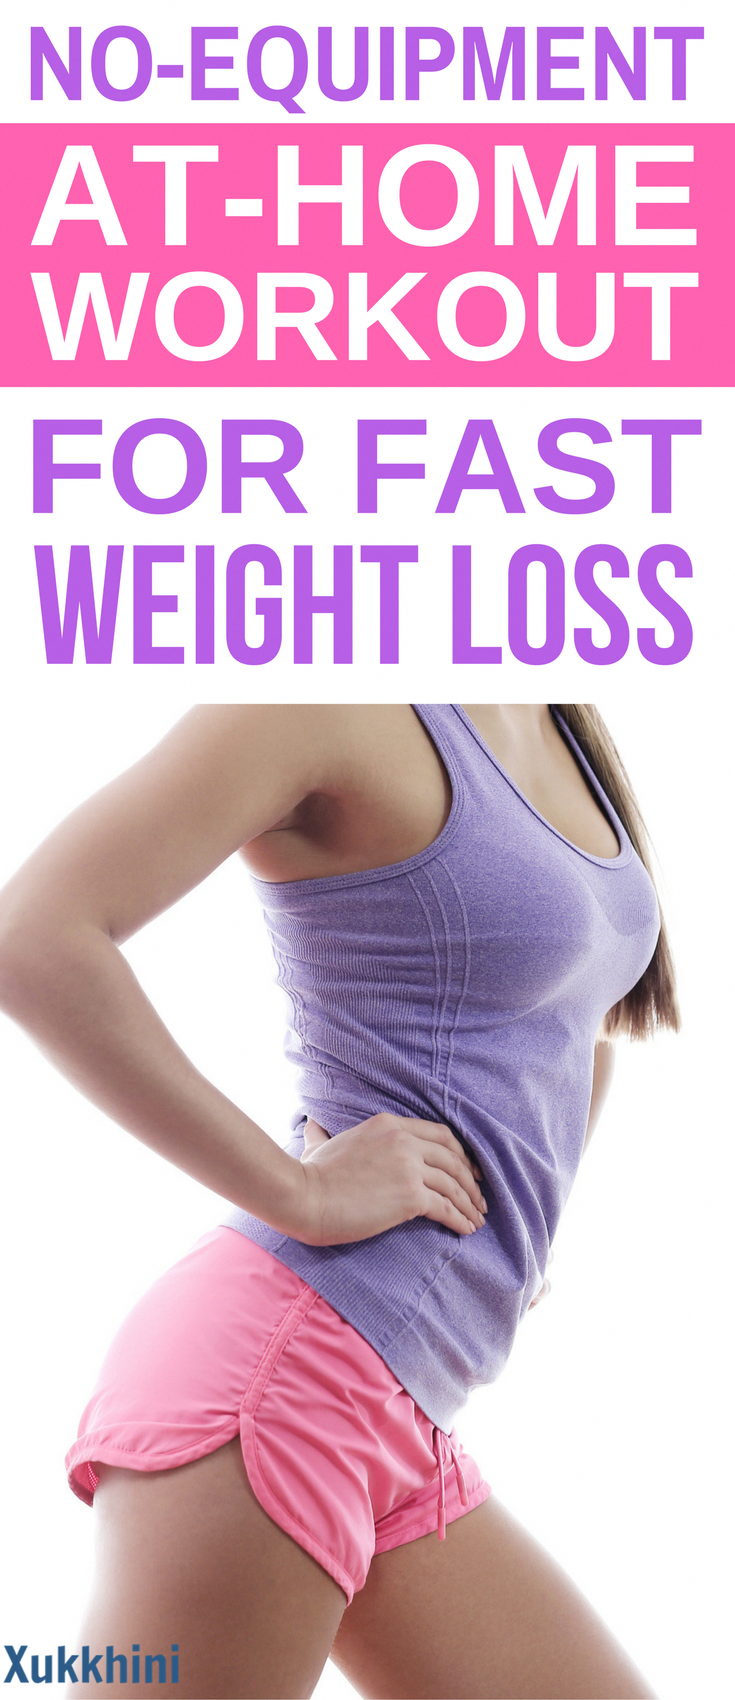 Quick weight loss tips without exercise #weightlosstips  | how to start losing weight fast#weightlos...